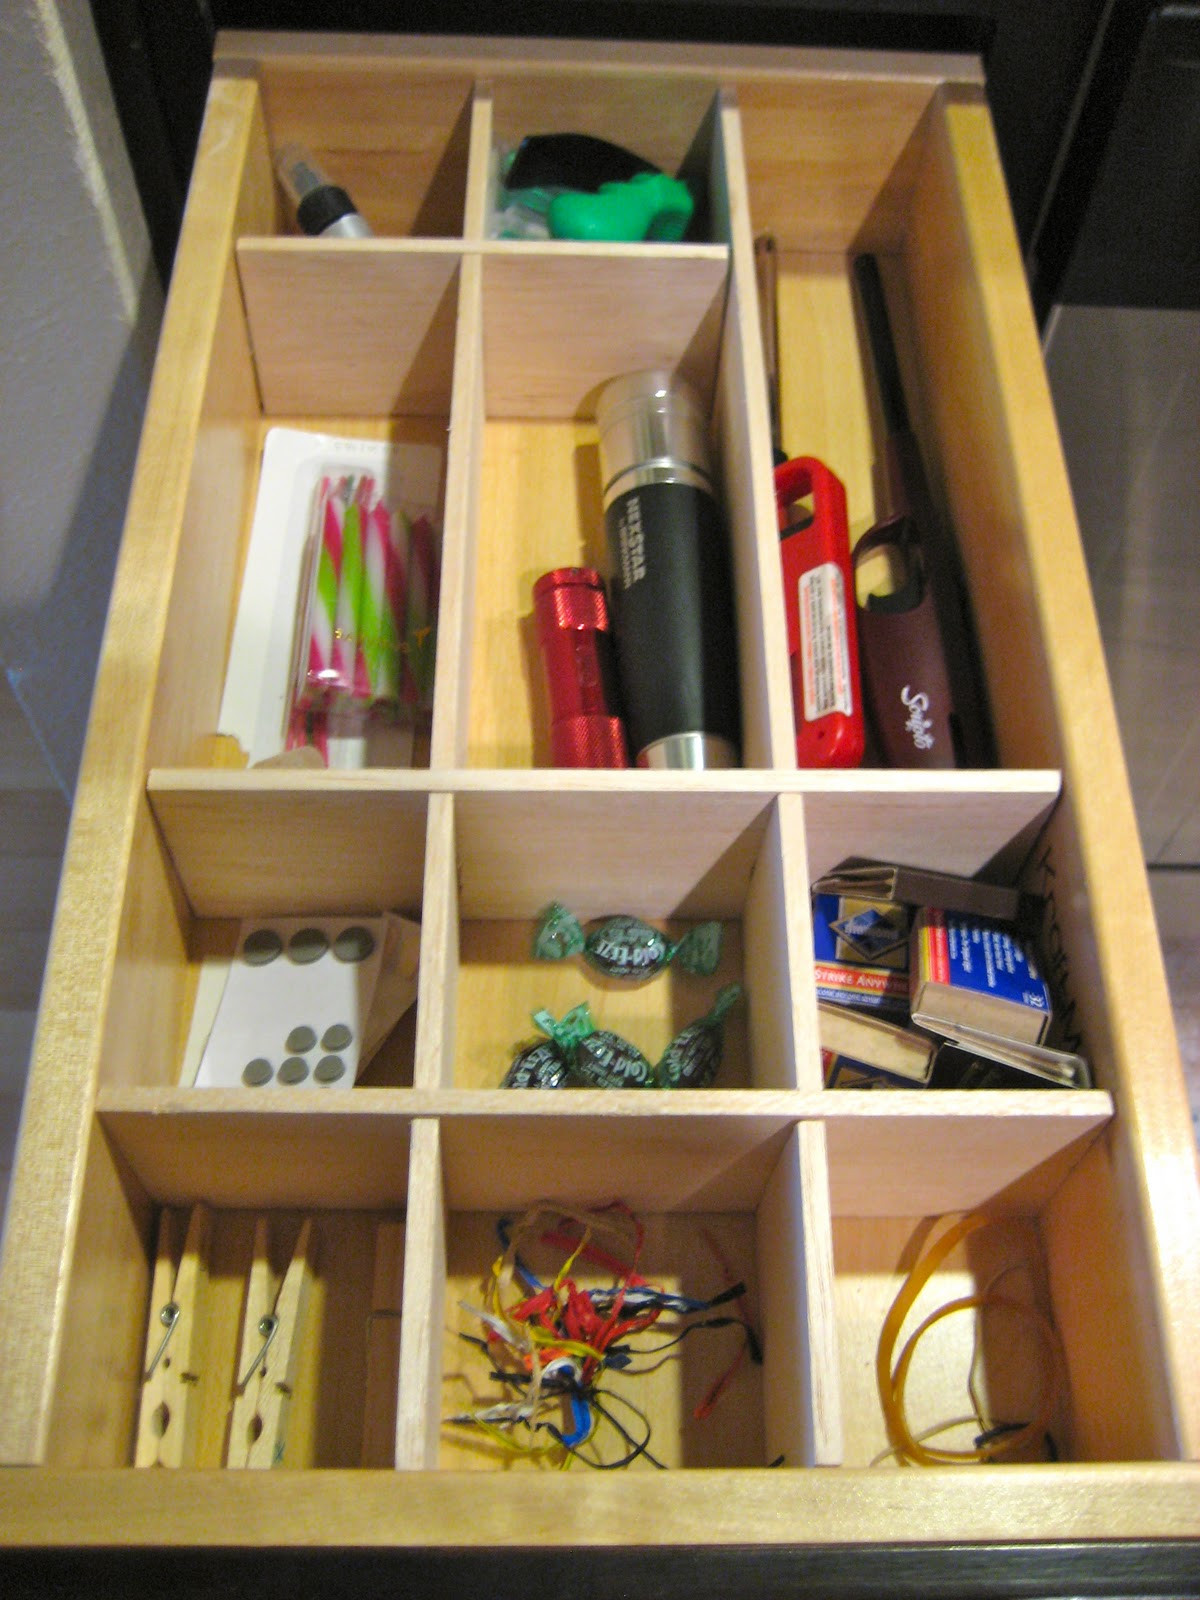 Best ideas about DIY Kitchen Drawer Dividers . Save or Pin C R A F T 72 Drawer Organizer Part 2 C R A F T Now.